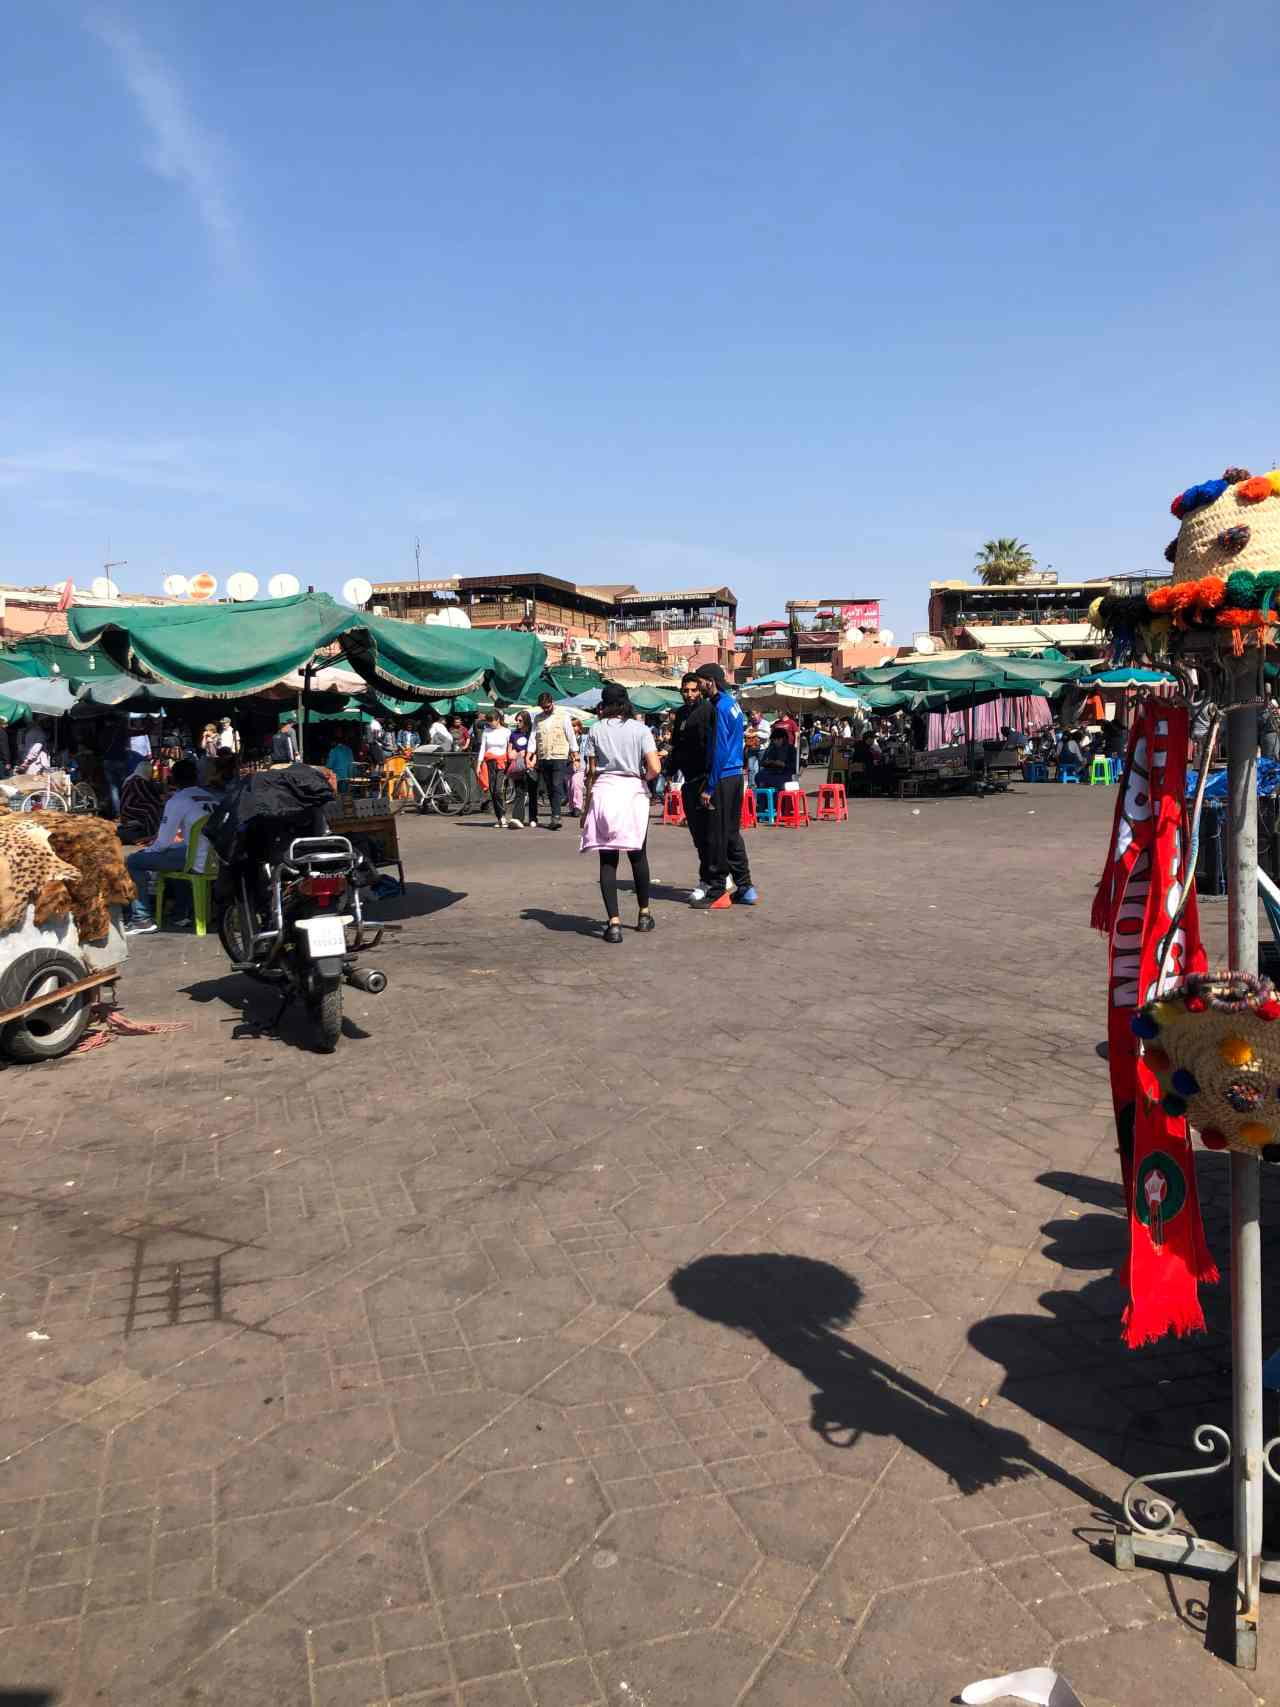 Marrakech main square by day